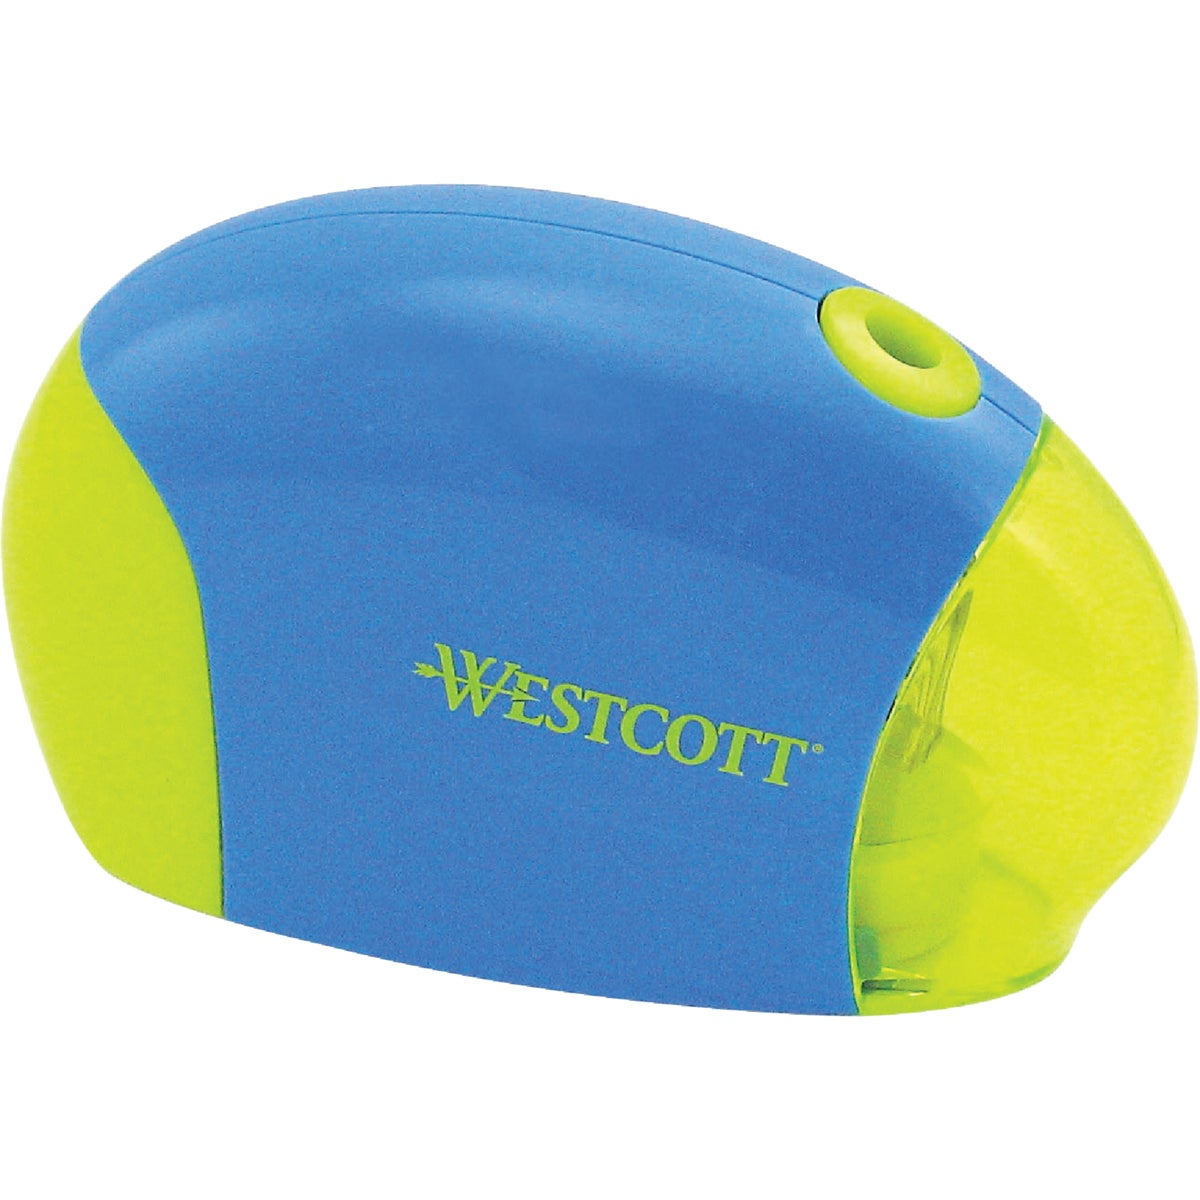 BATTERY PENCIL SHARPENER - 14243 by Westcott Clauss